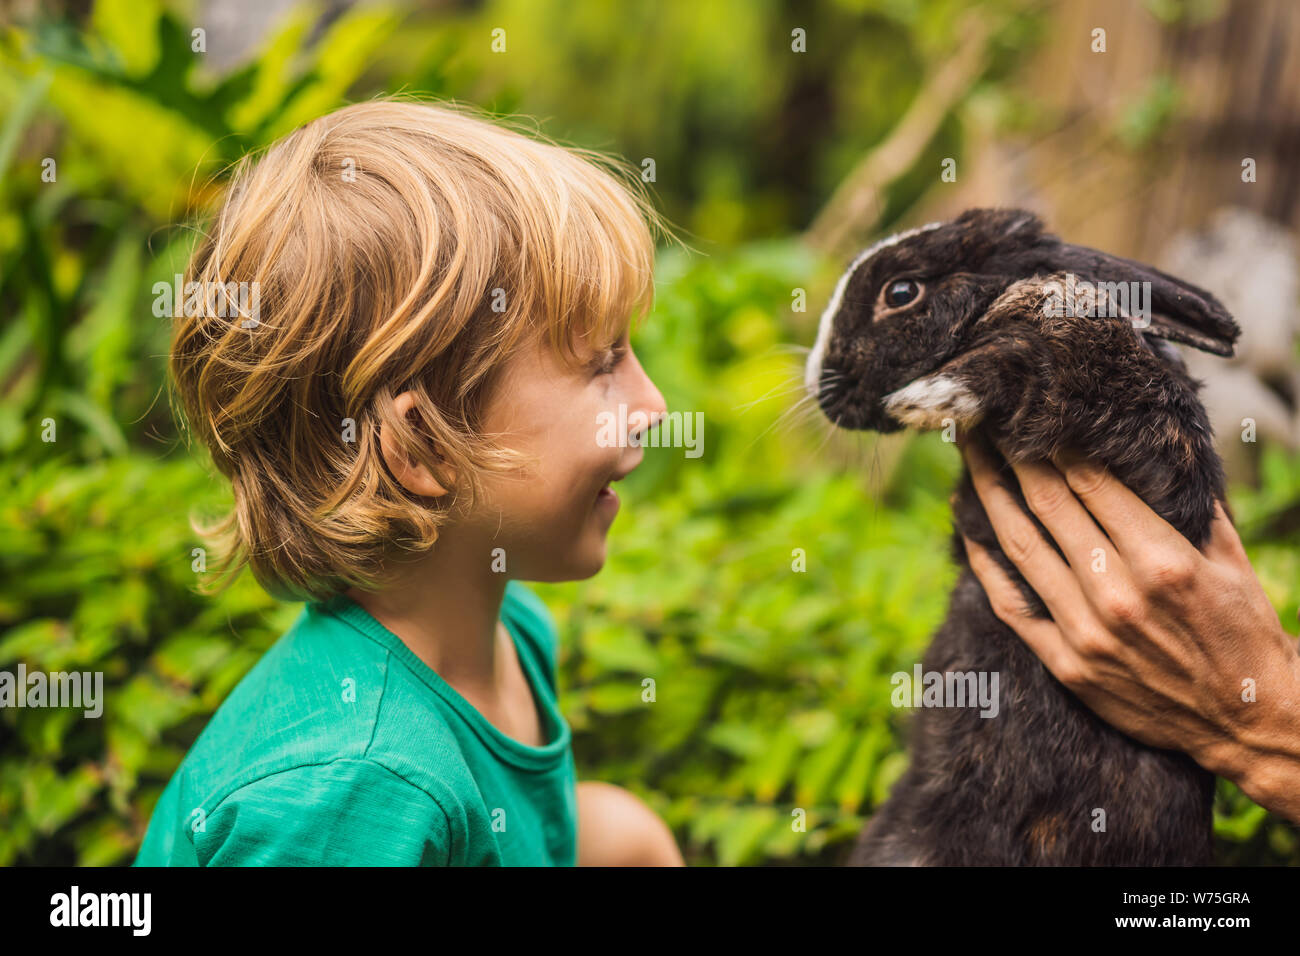 The boy feeds the rabbit. Cosmetics test on rabbit animal. Cruelty free and stop animal abuse concept Stock Photo